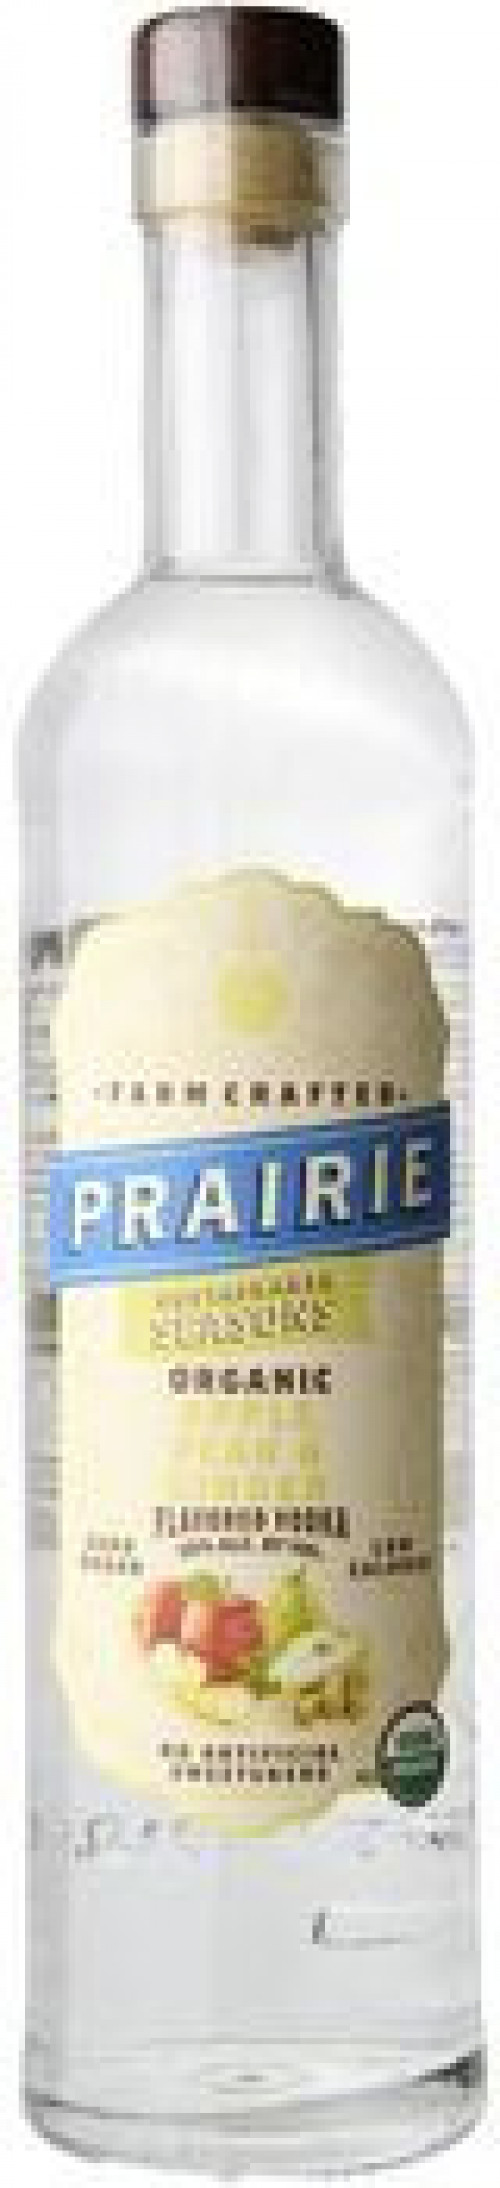 Prairie Sustainable Seasons Apple, Pear, & Ginger Organic Vodka 750ml